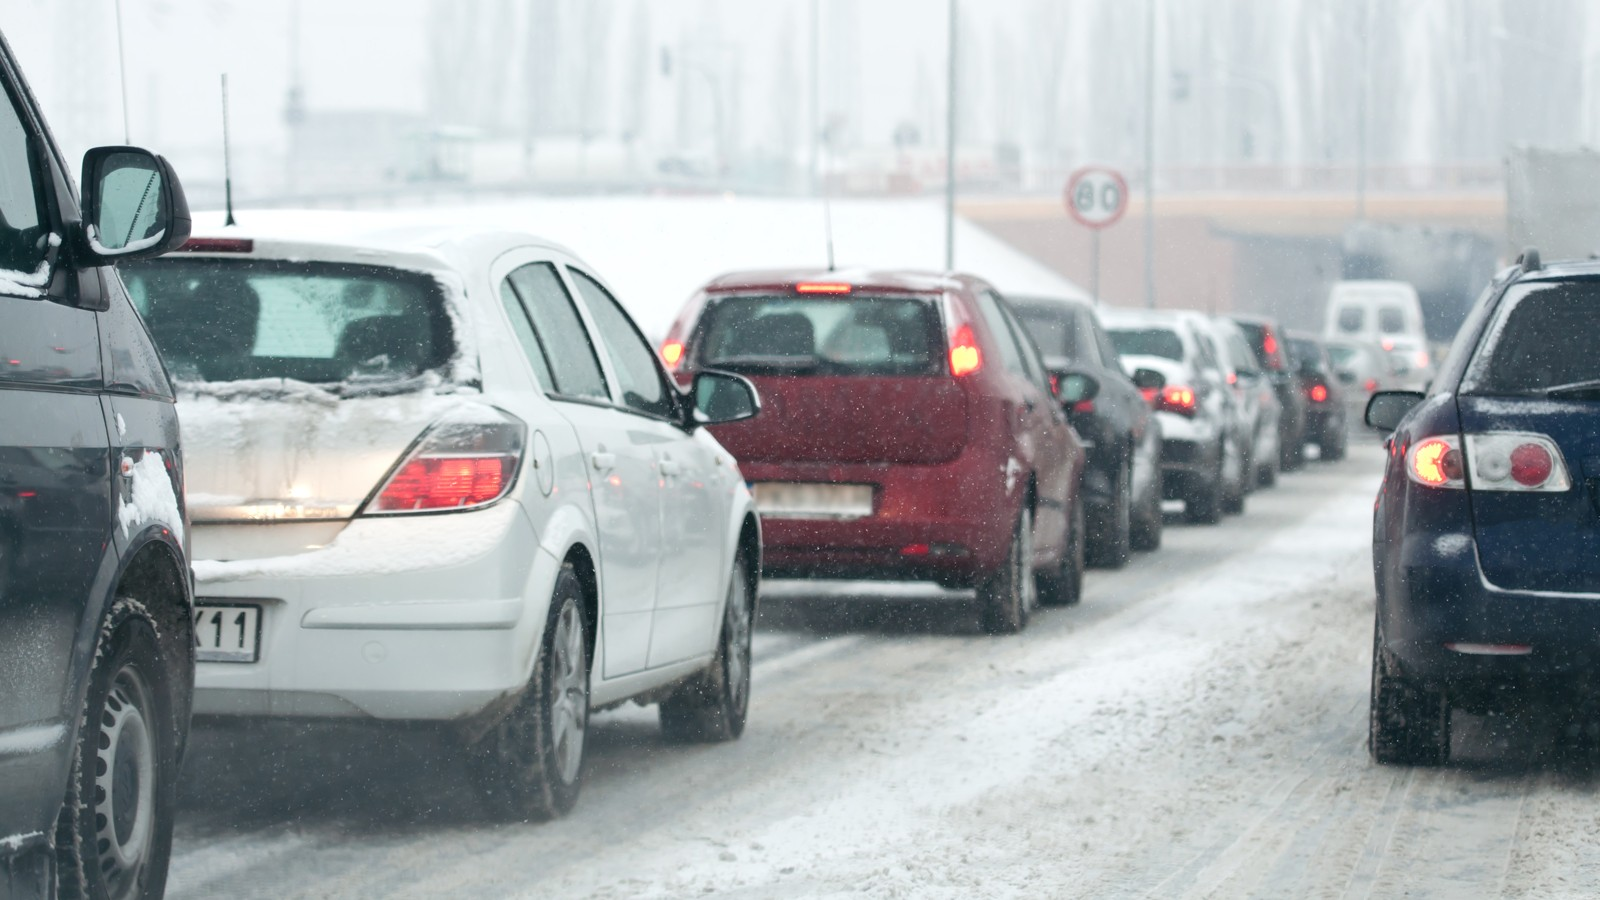 traffic jam in the city at winter time